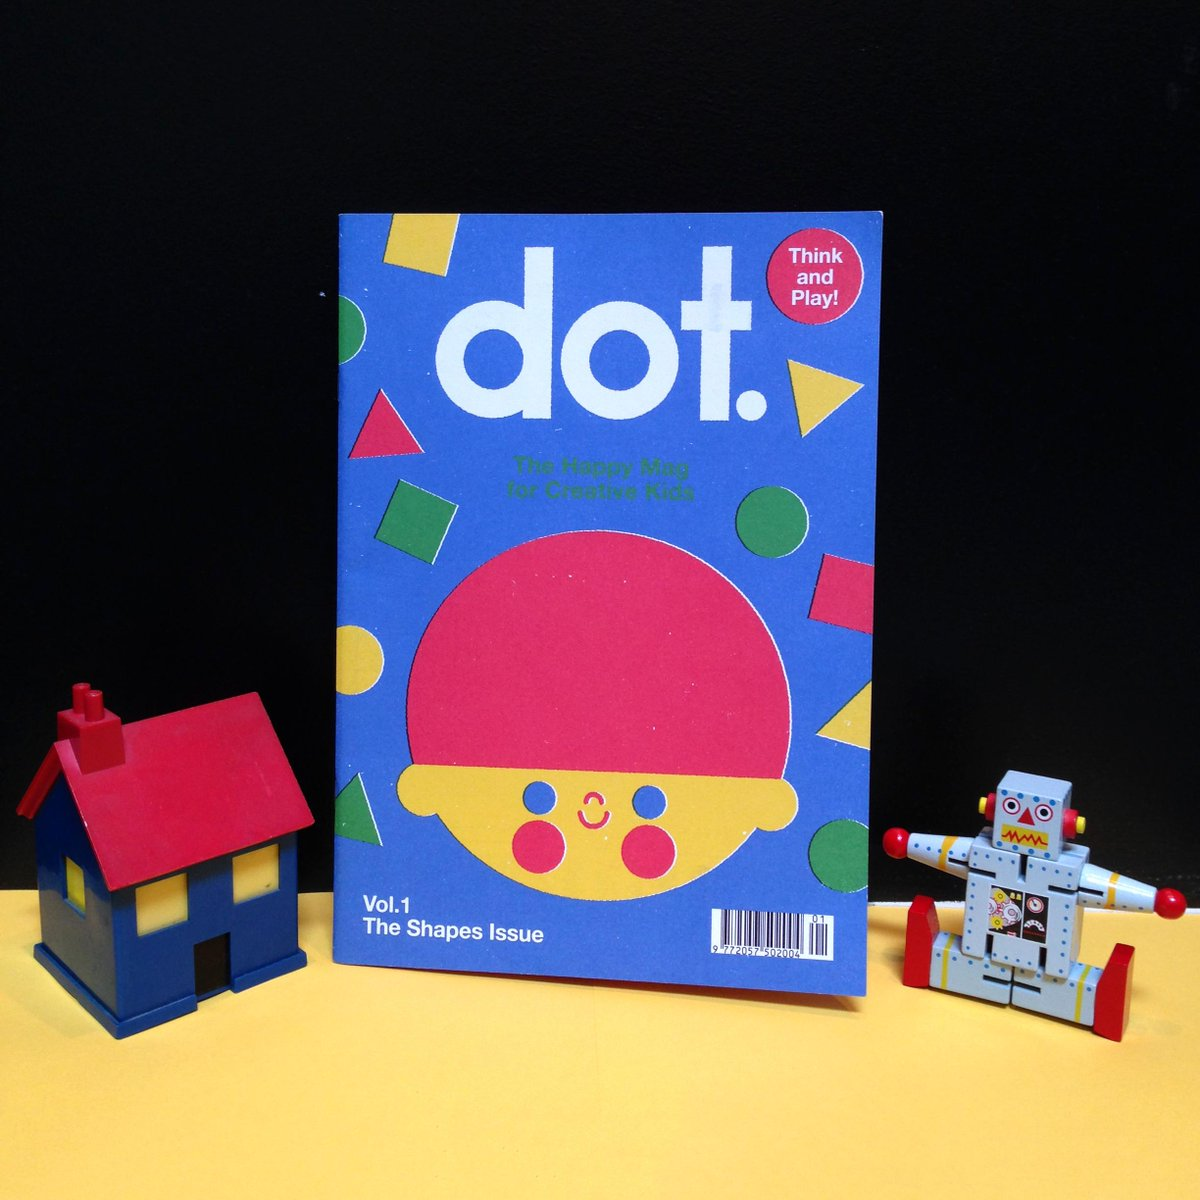 It's Wednesday, let's WIN something. RT for chance to win 2 volumes of DOT. We will pick 2 winners by tomorrow 5pm. http://t.co/EyiyT03fWJ